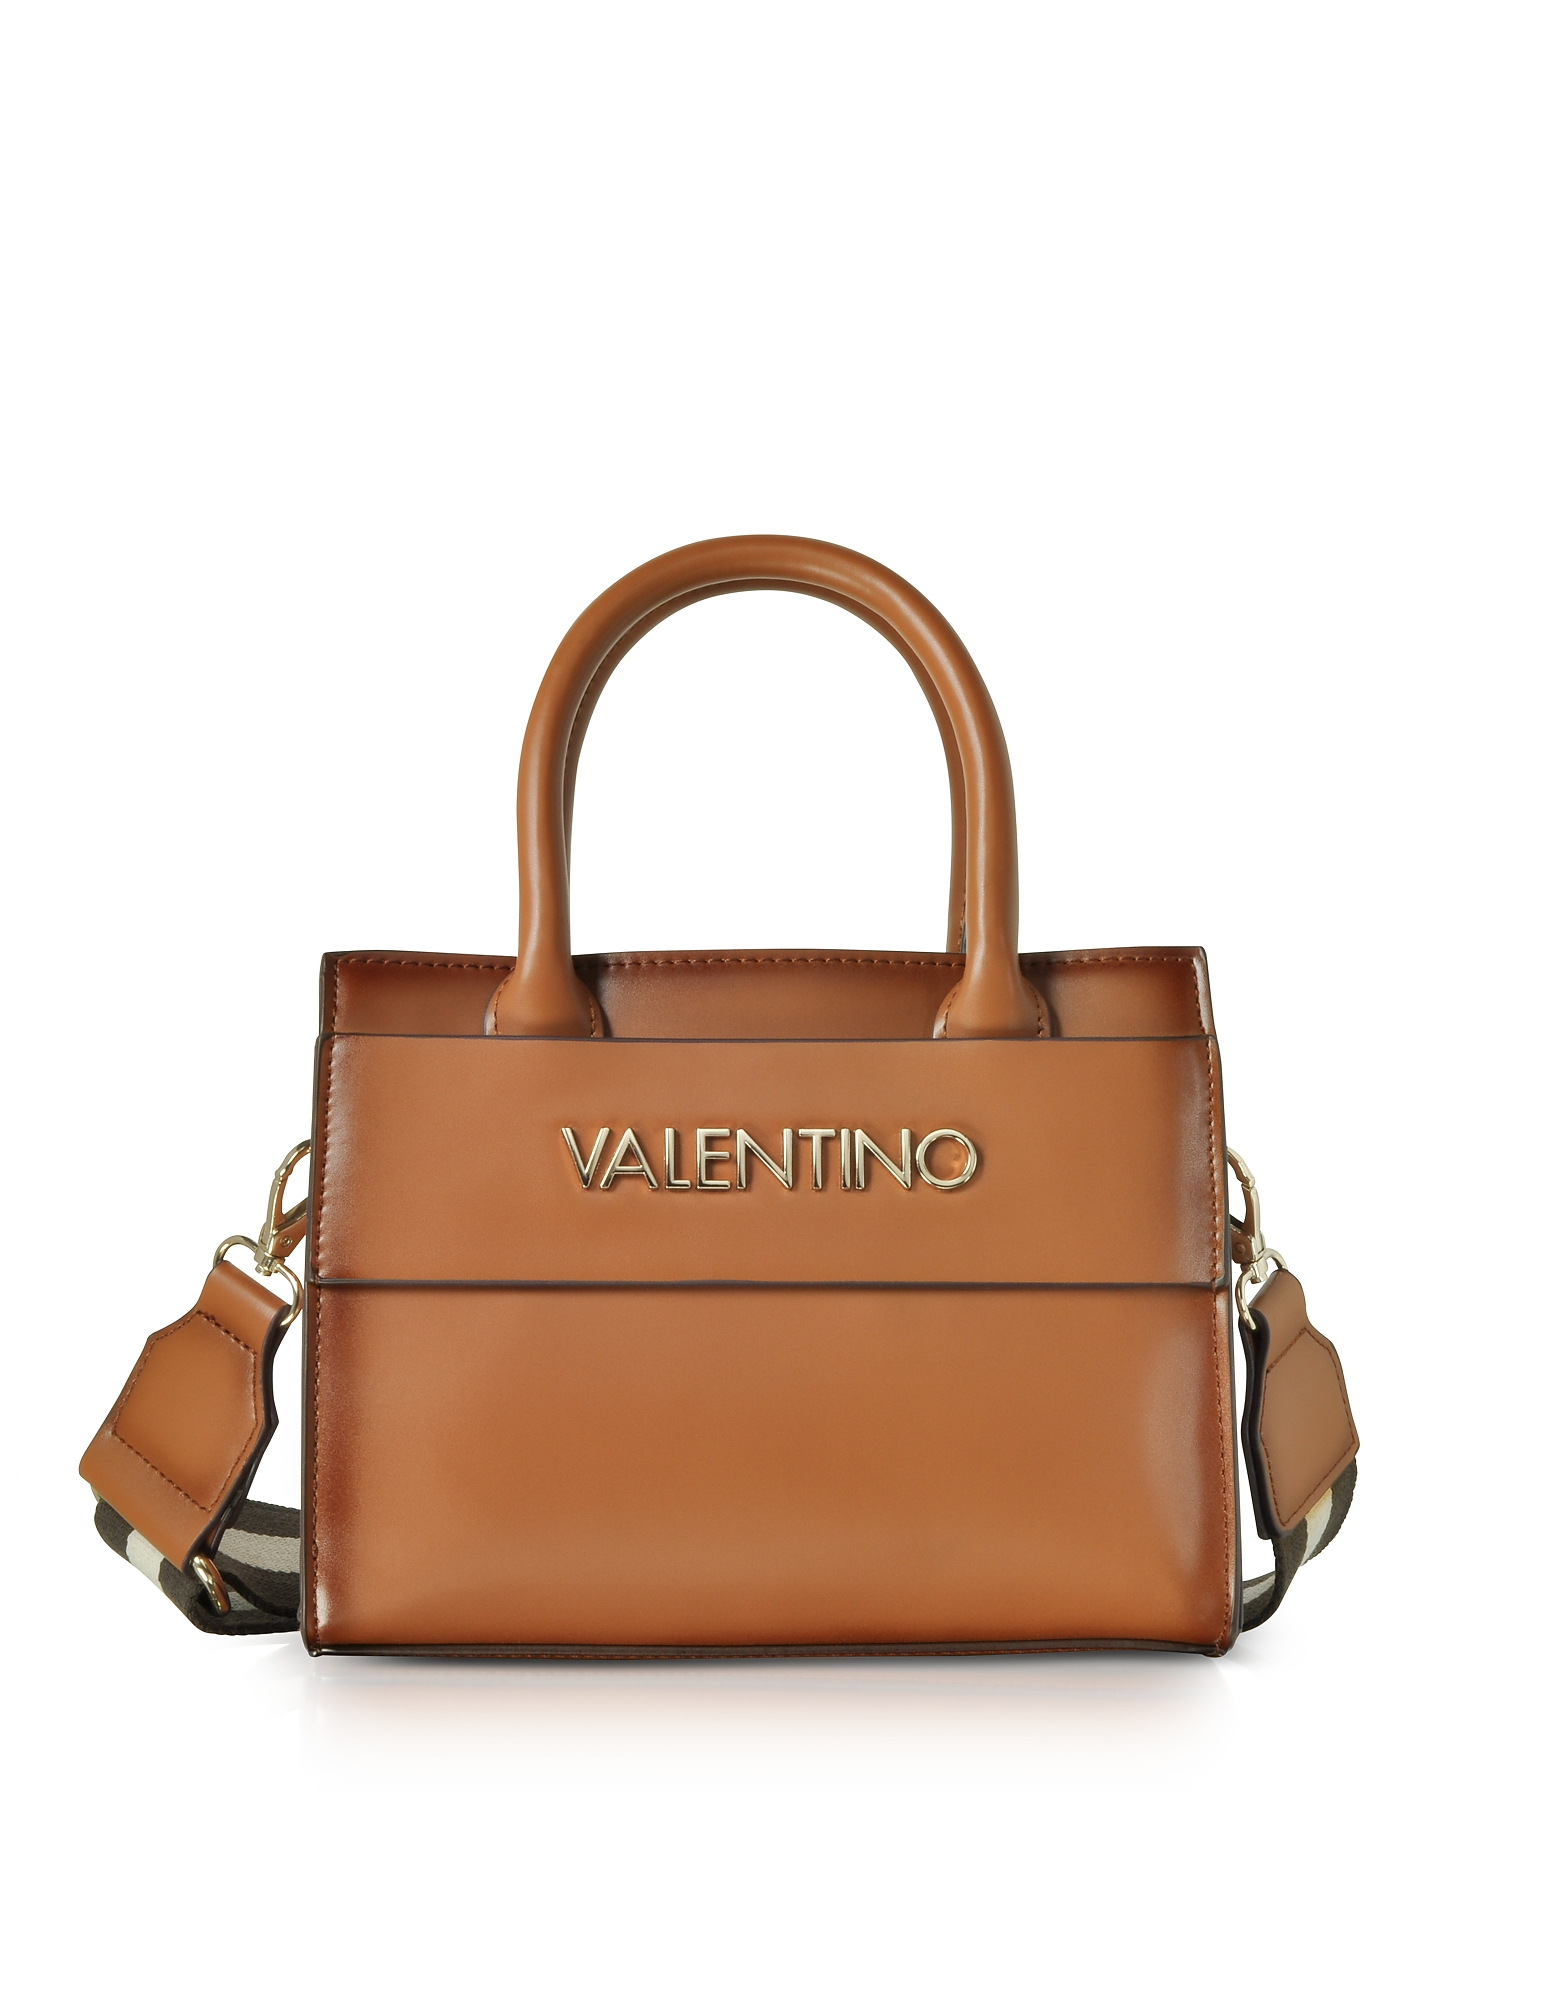 Valentino by Mario Valentino Handbags, Small Blast Eco Leather Tote Bag